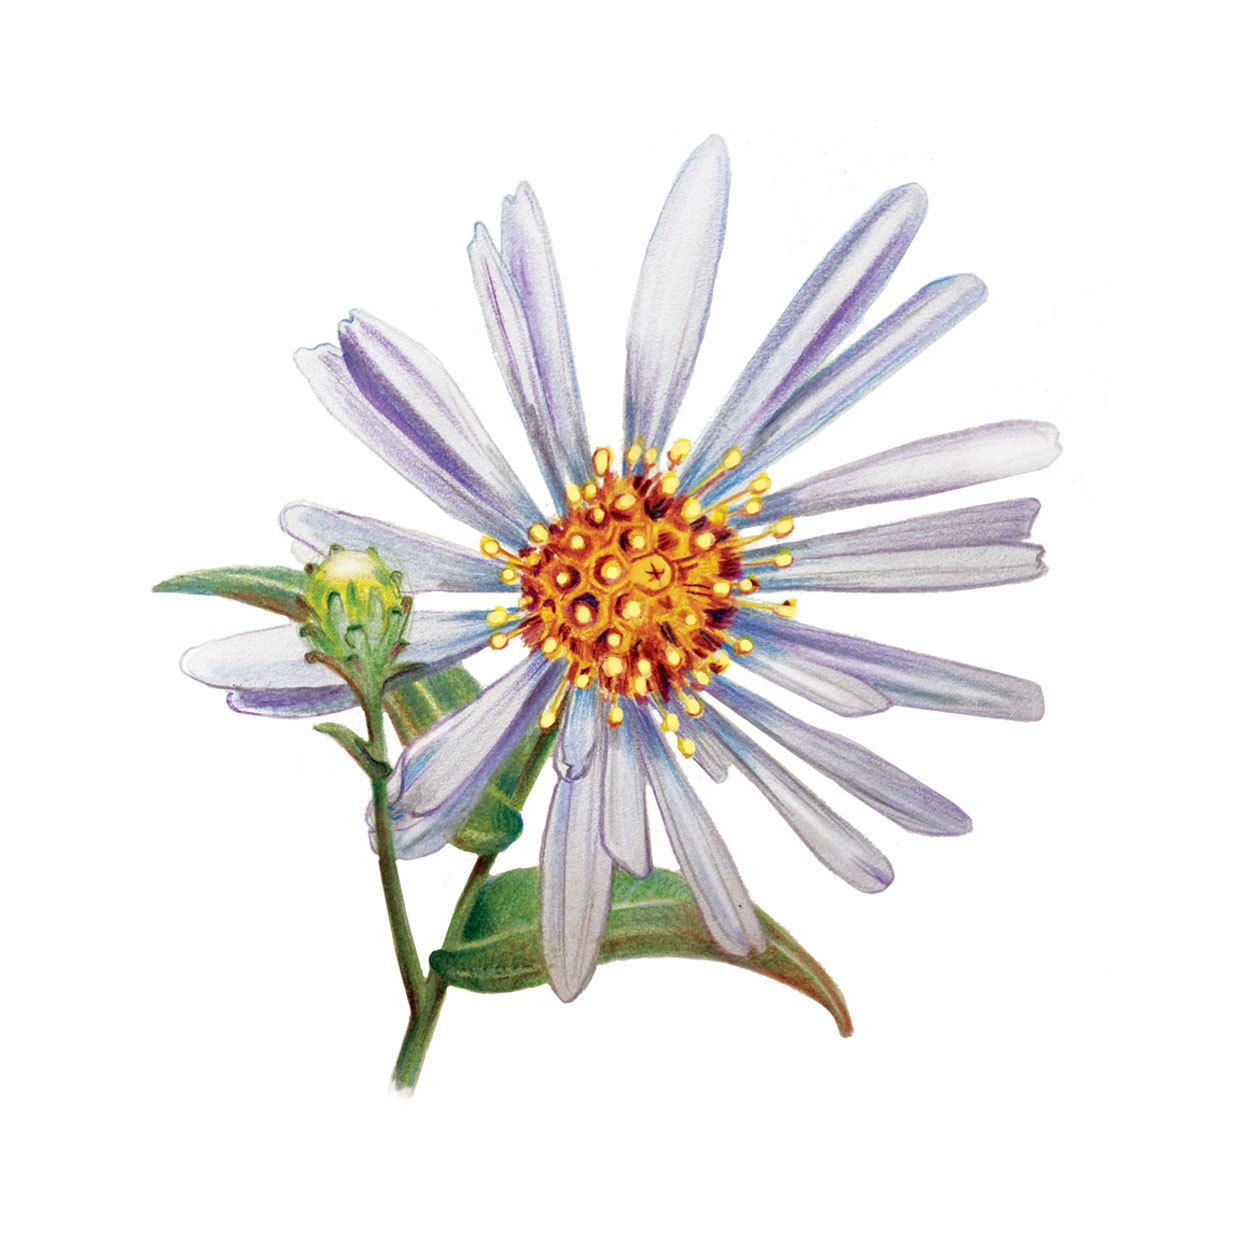 Illustration of Aster